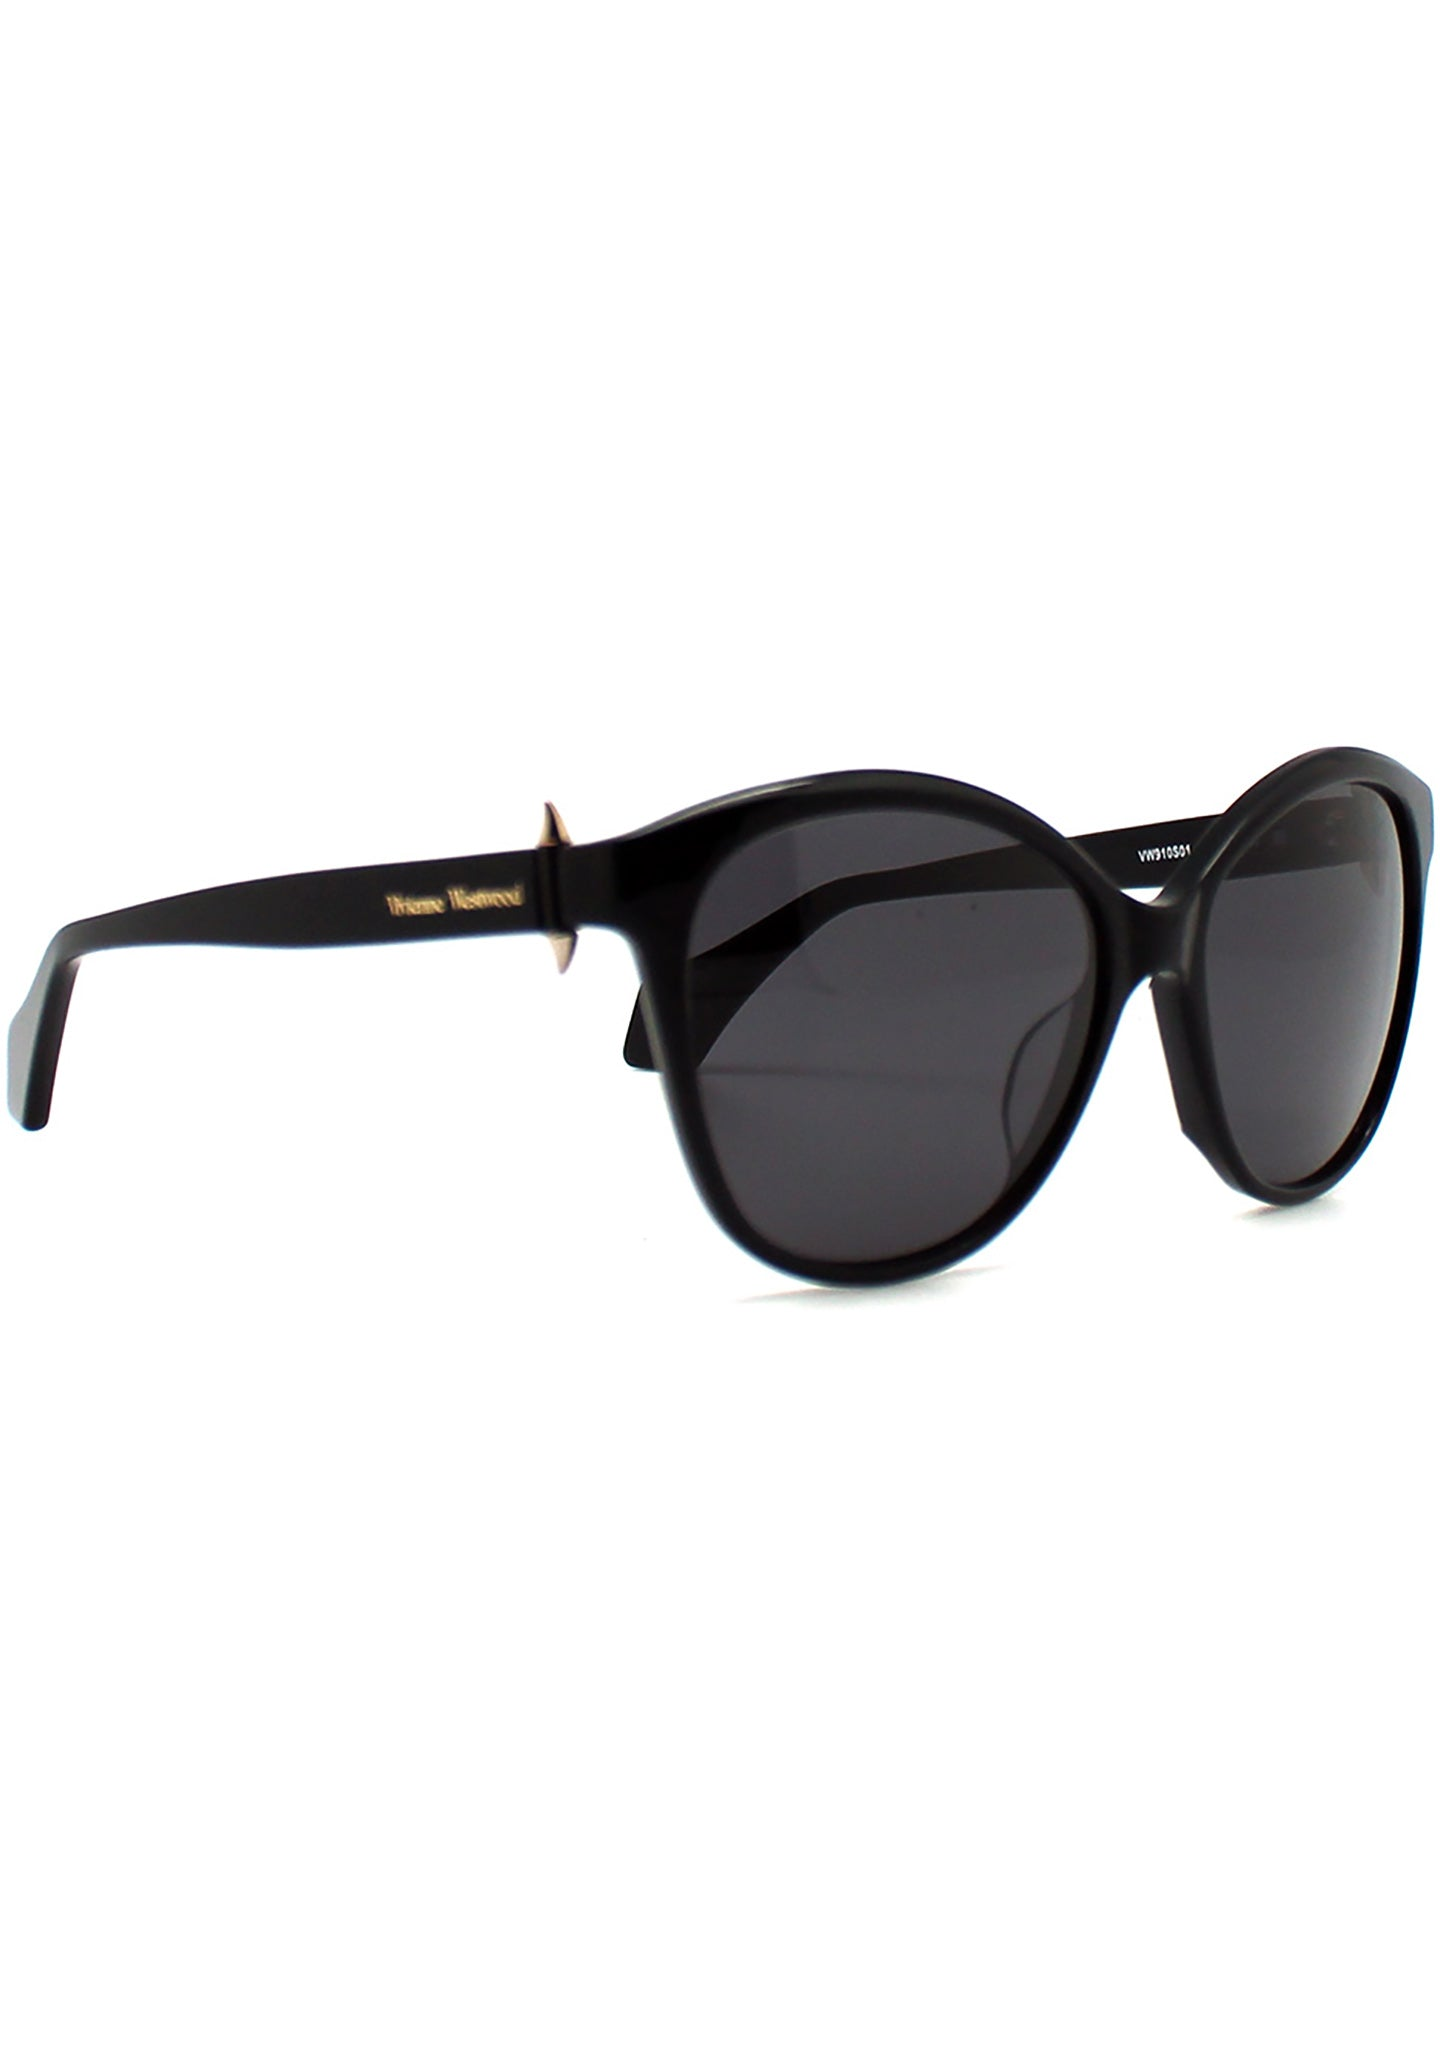 Vivienne Westwood Horn Studs Sunglasses in Black